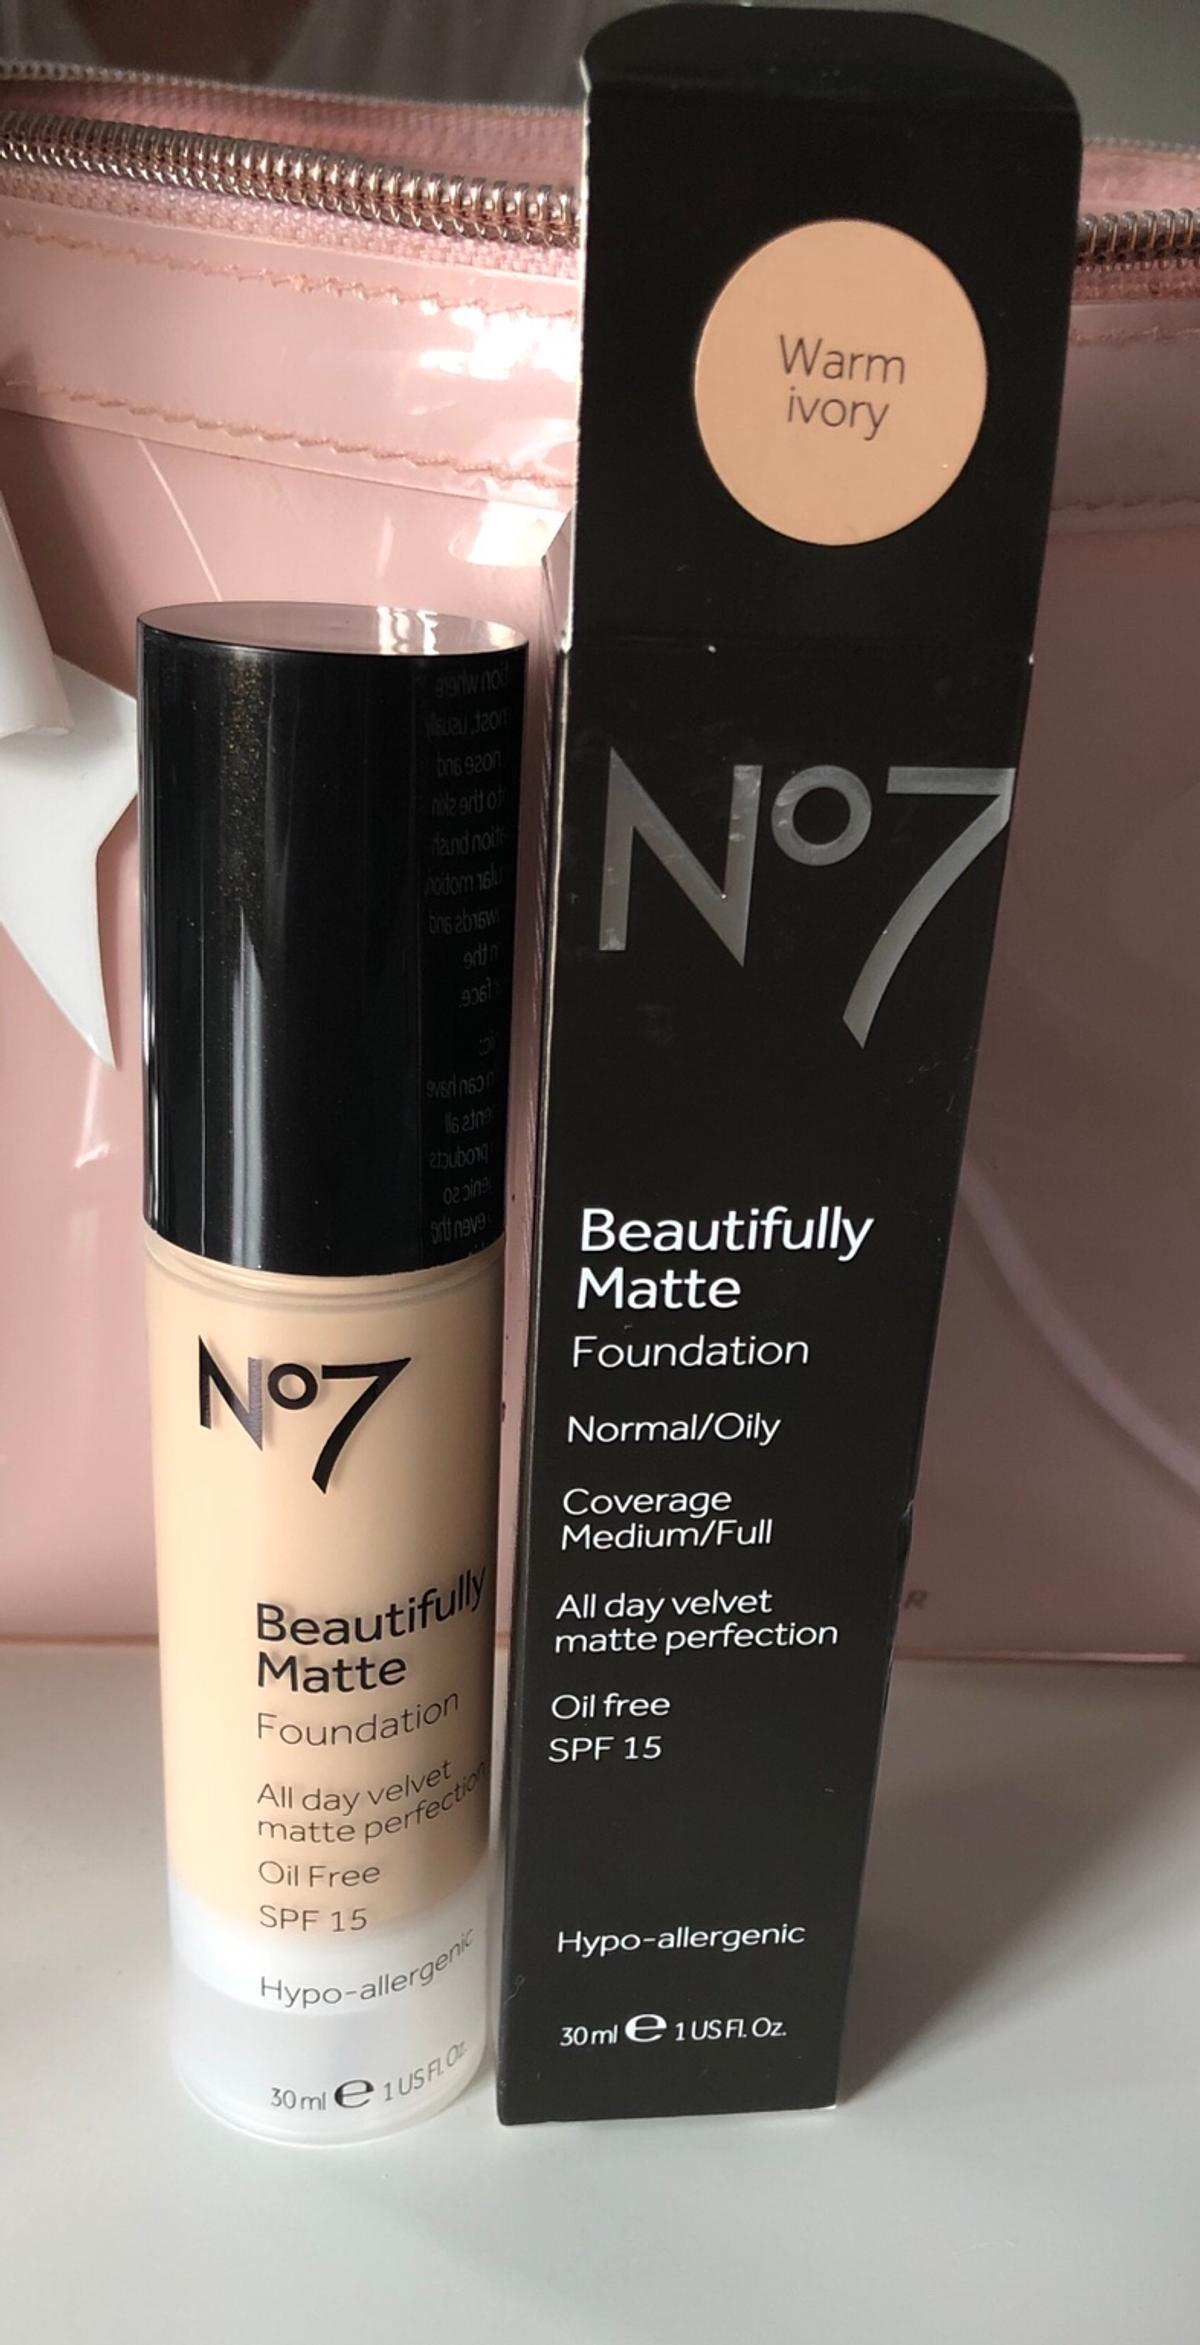 No7 Foundation Shade Warm Ivory In S62 Rotherham For 5 00 For Sale Shpock